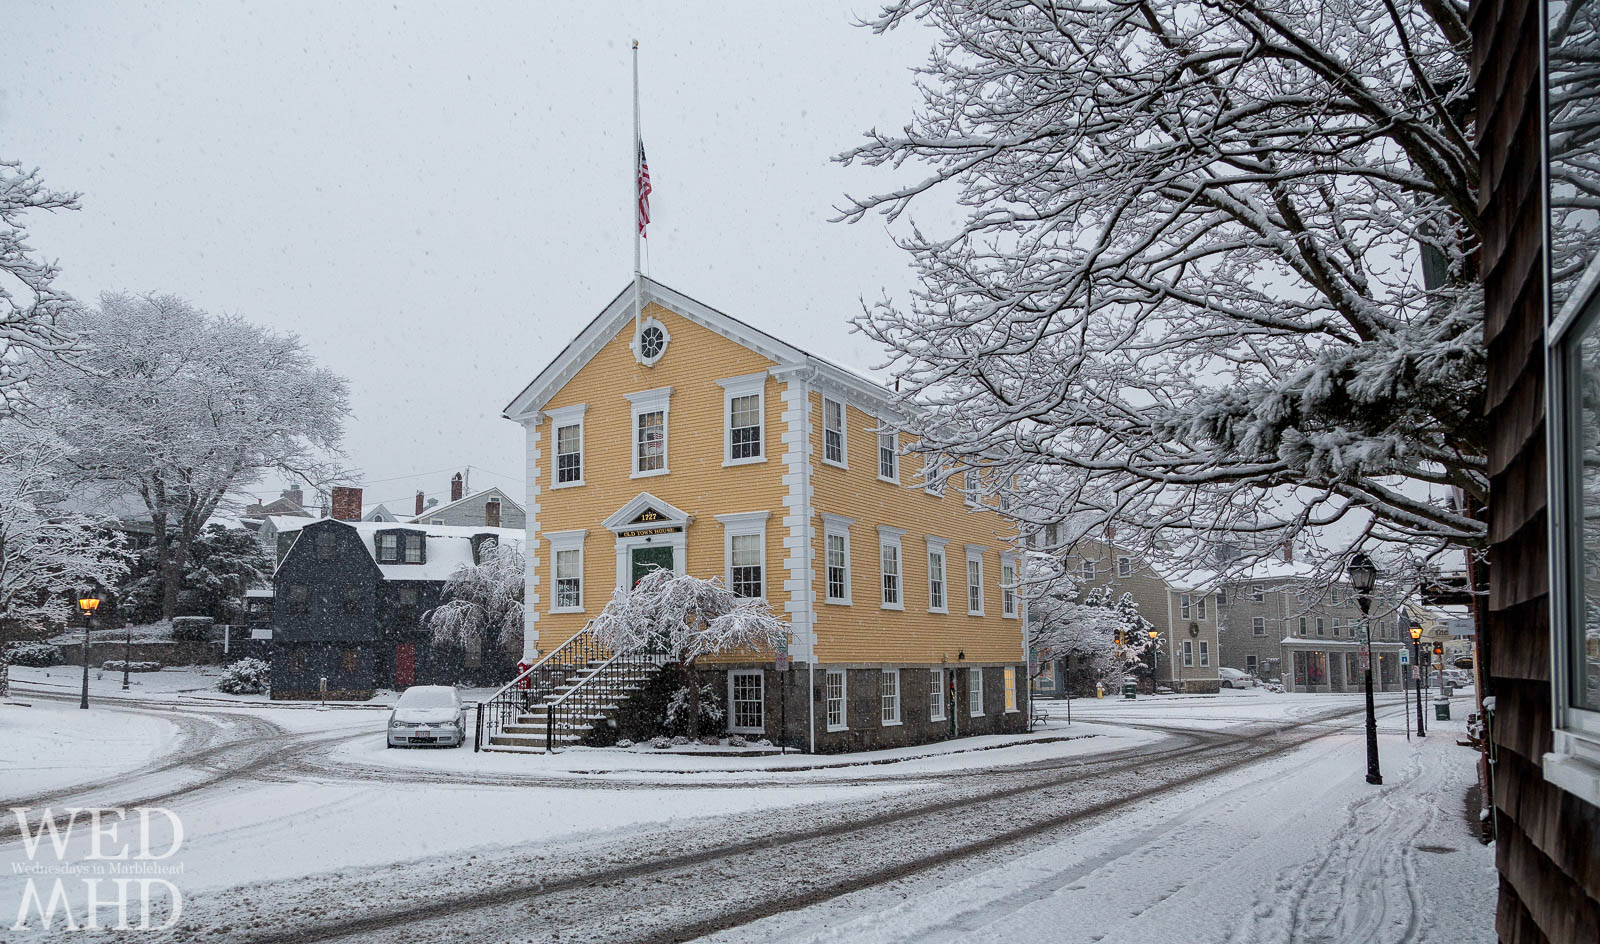 freshly falling snow on Old Town House in Marblehead